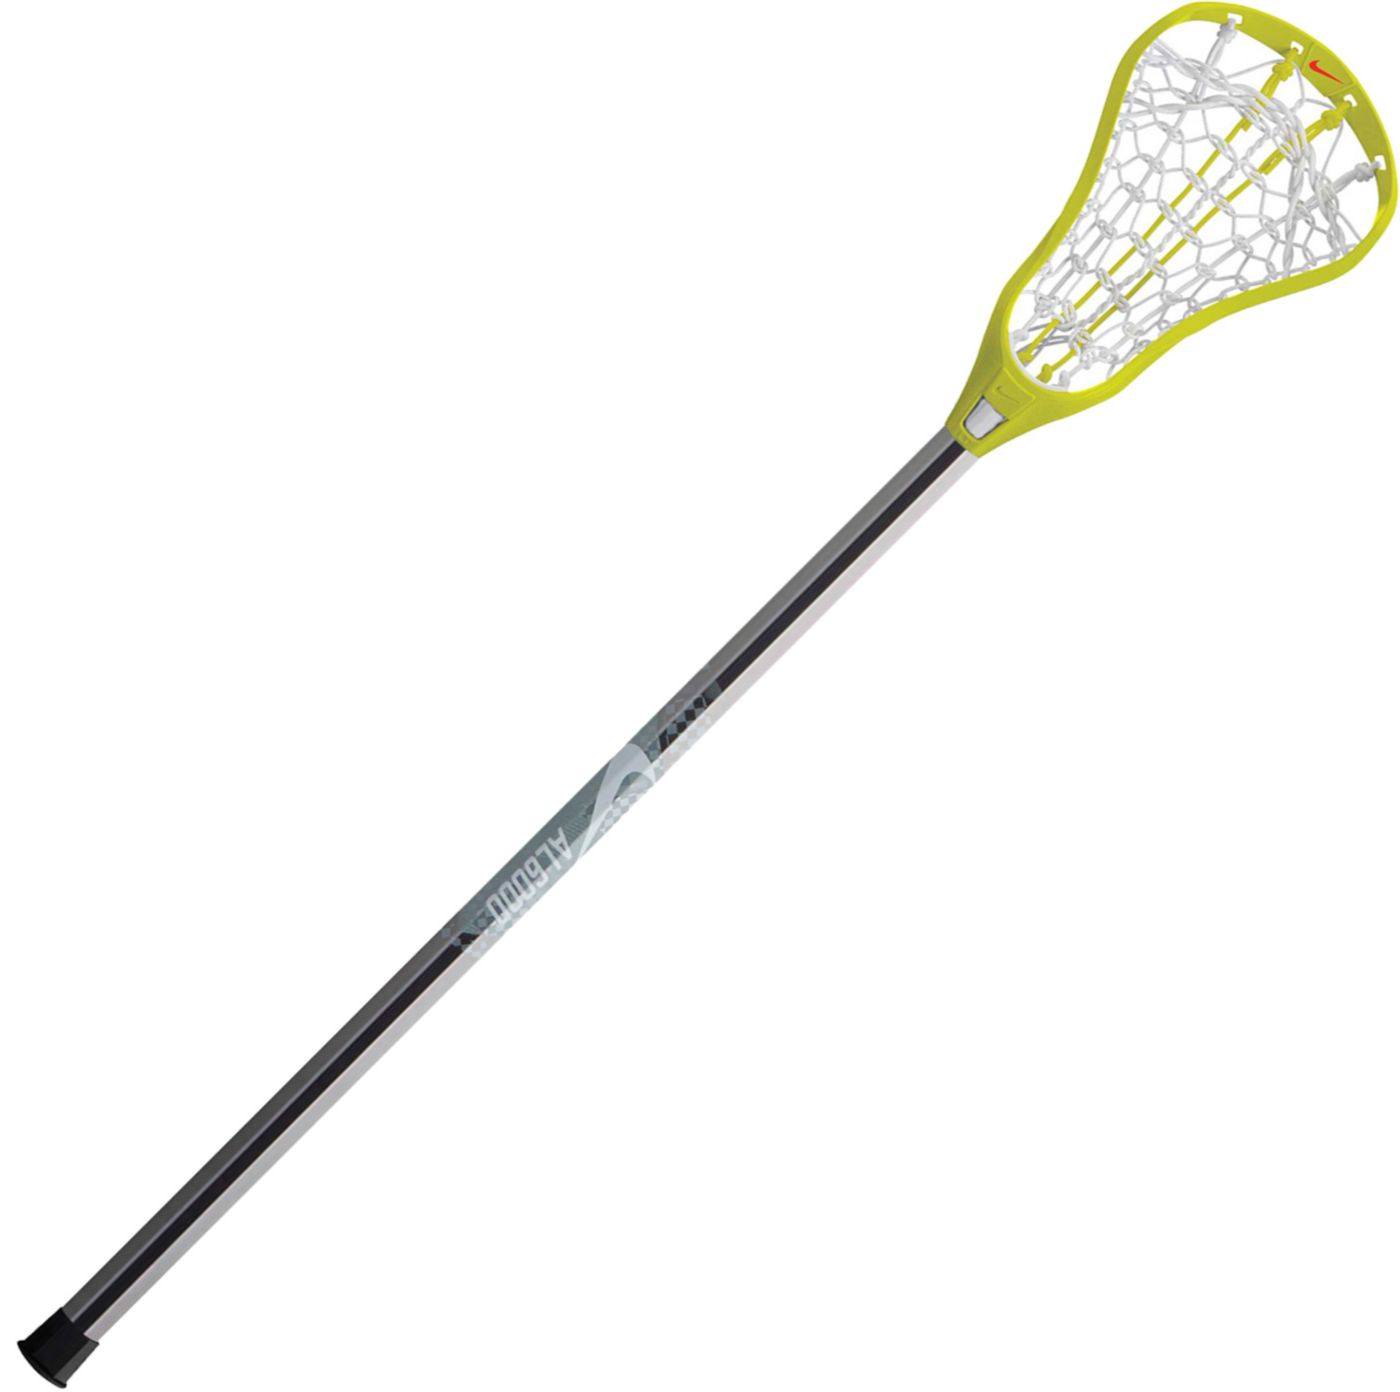 Nike Women's Arise LT on AL 6000 Lacrosse Stick